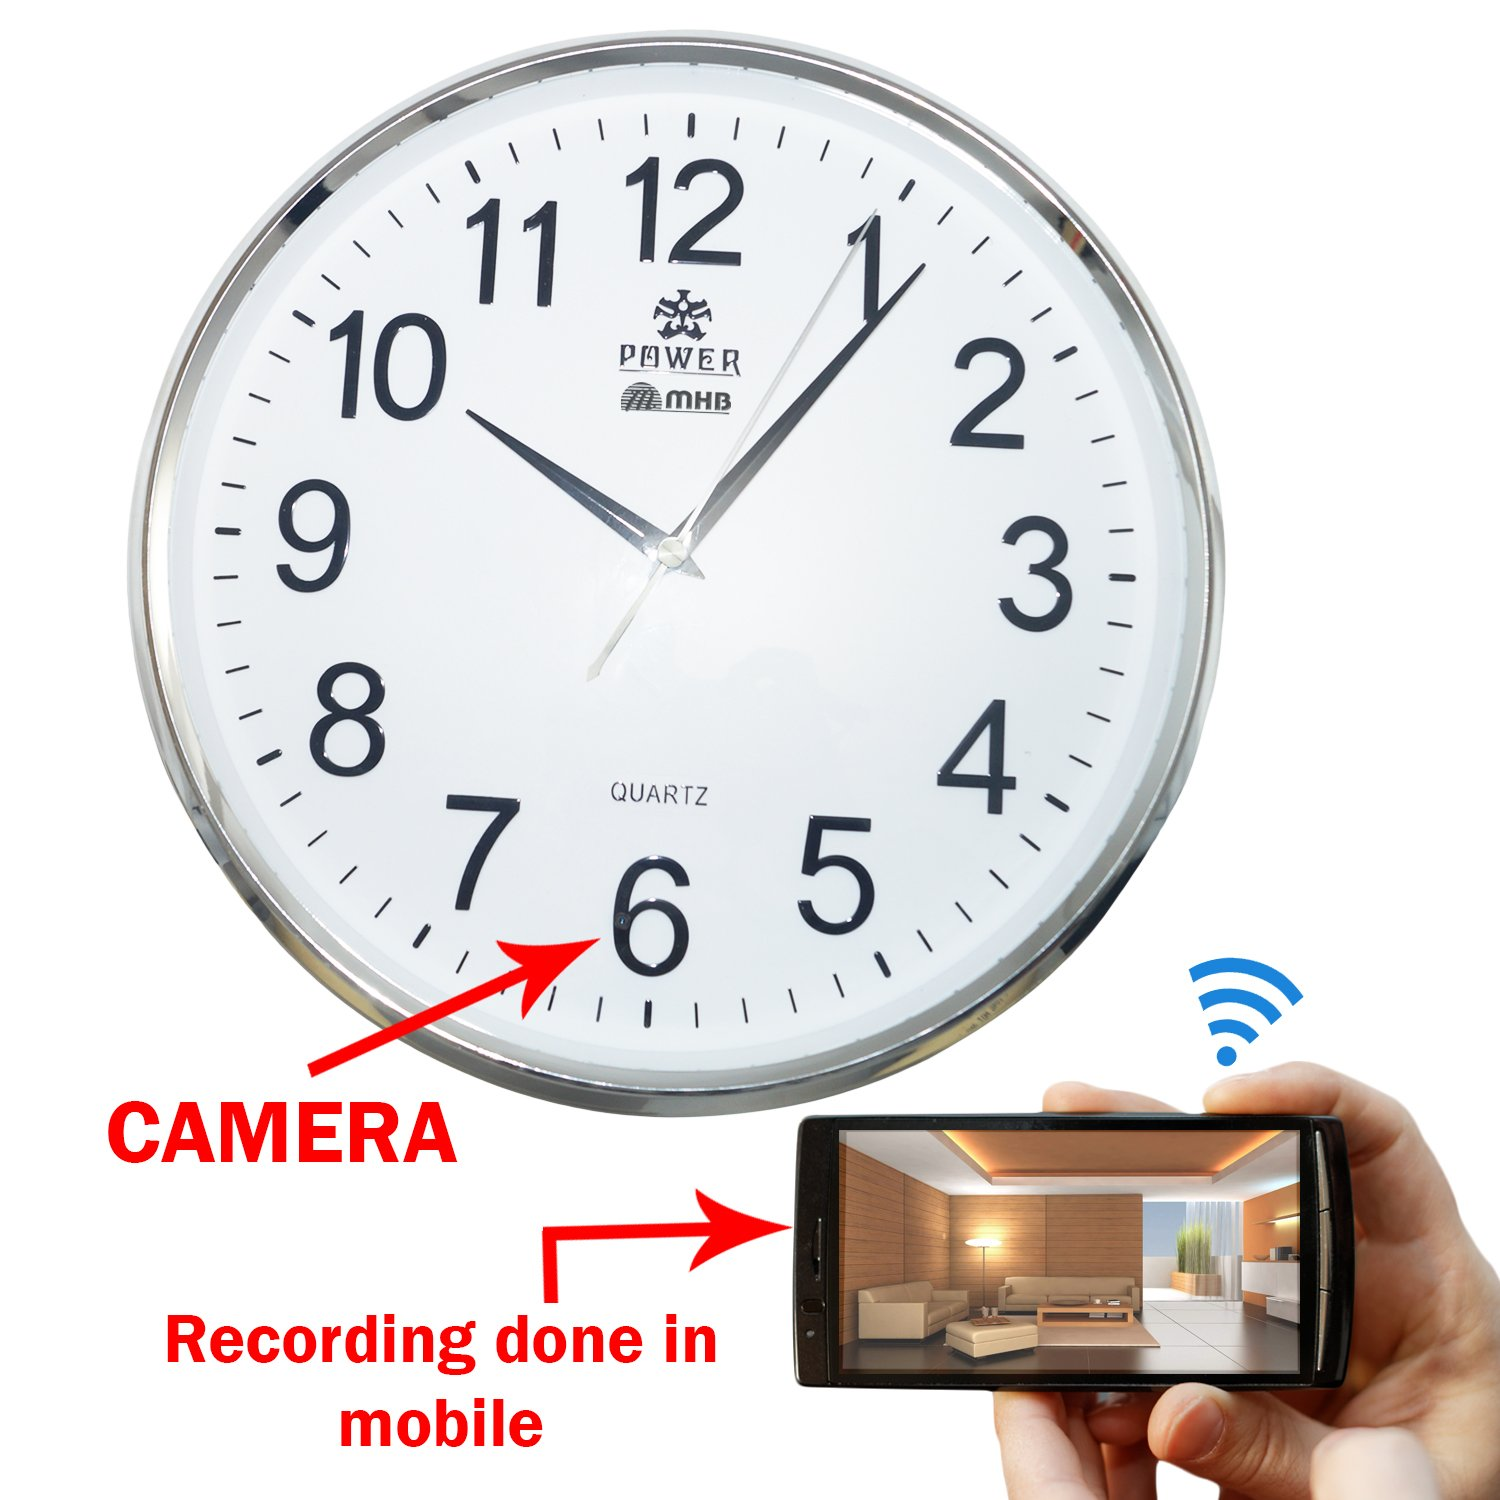 Buy m mhb wifi wall clock hidden spy camera full hd 19201080 buy m mhb wifi wall clock hidden spy camera full hd 19201080 quality online at low price in india m mhb camera reviews ratings amazon amipublicfo Images